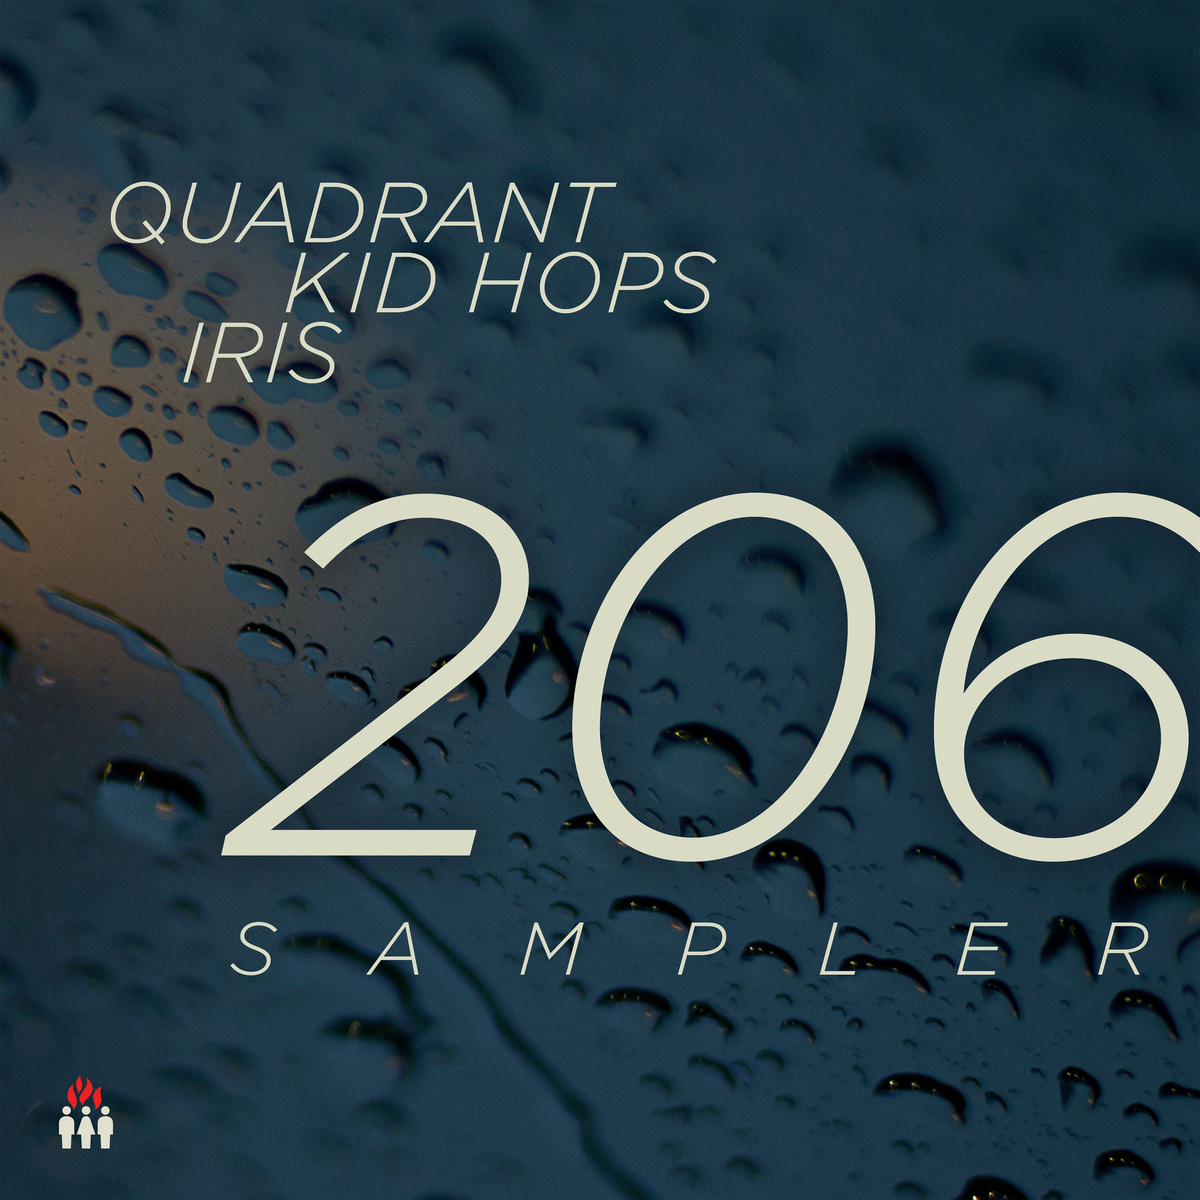 Quadrant, Kid Hops & Iris - 206 Album Sampler